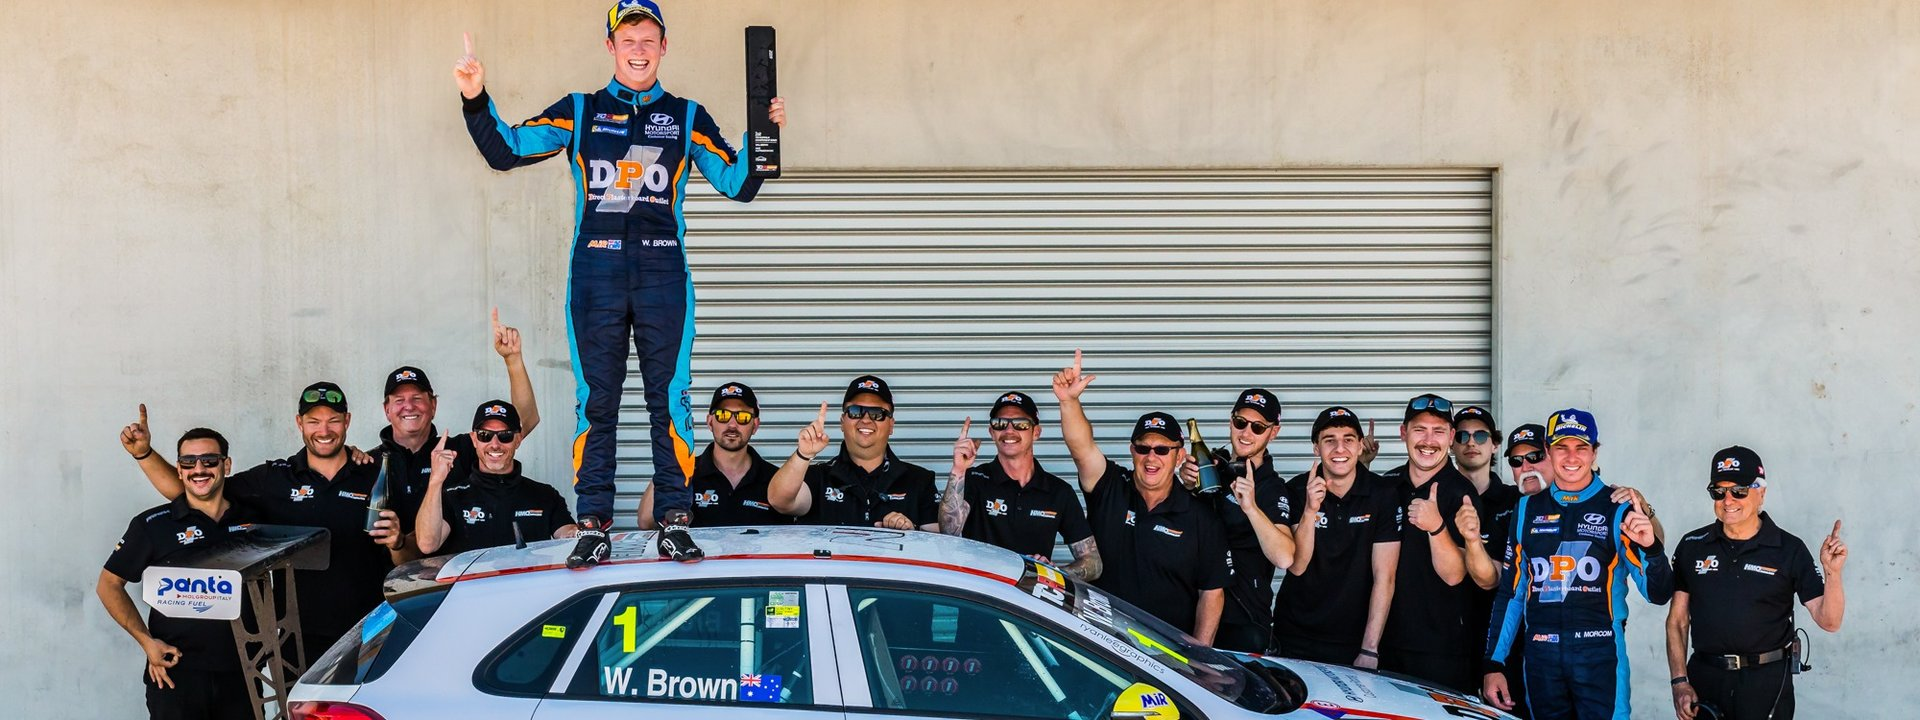 Will Brown TCR Champ